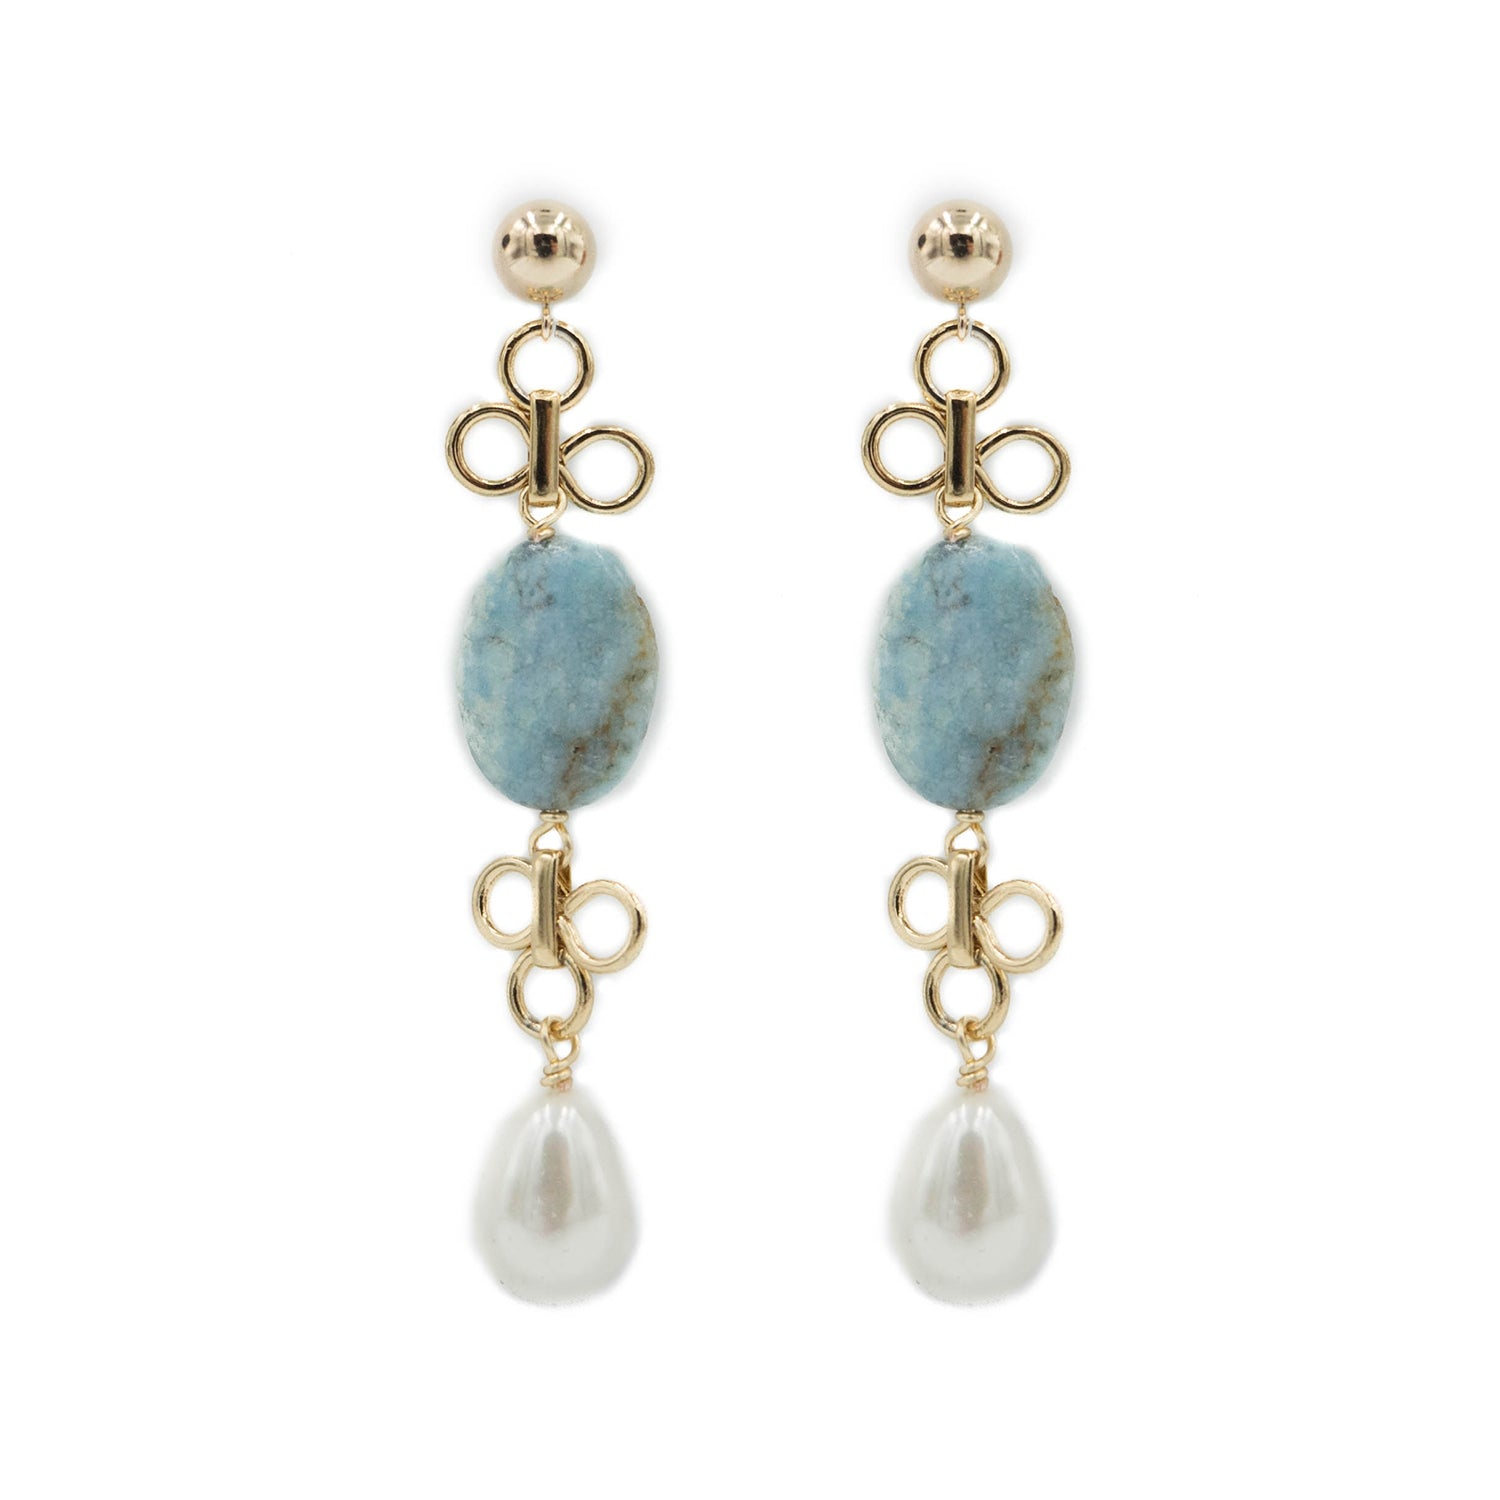 Caitlin Earring, Turquoise